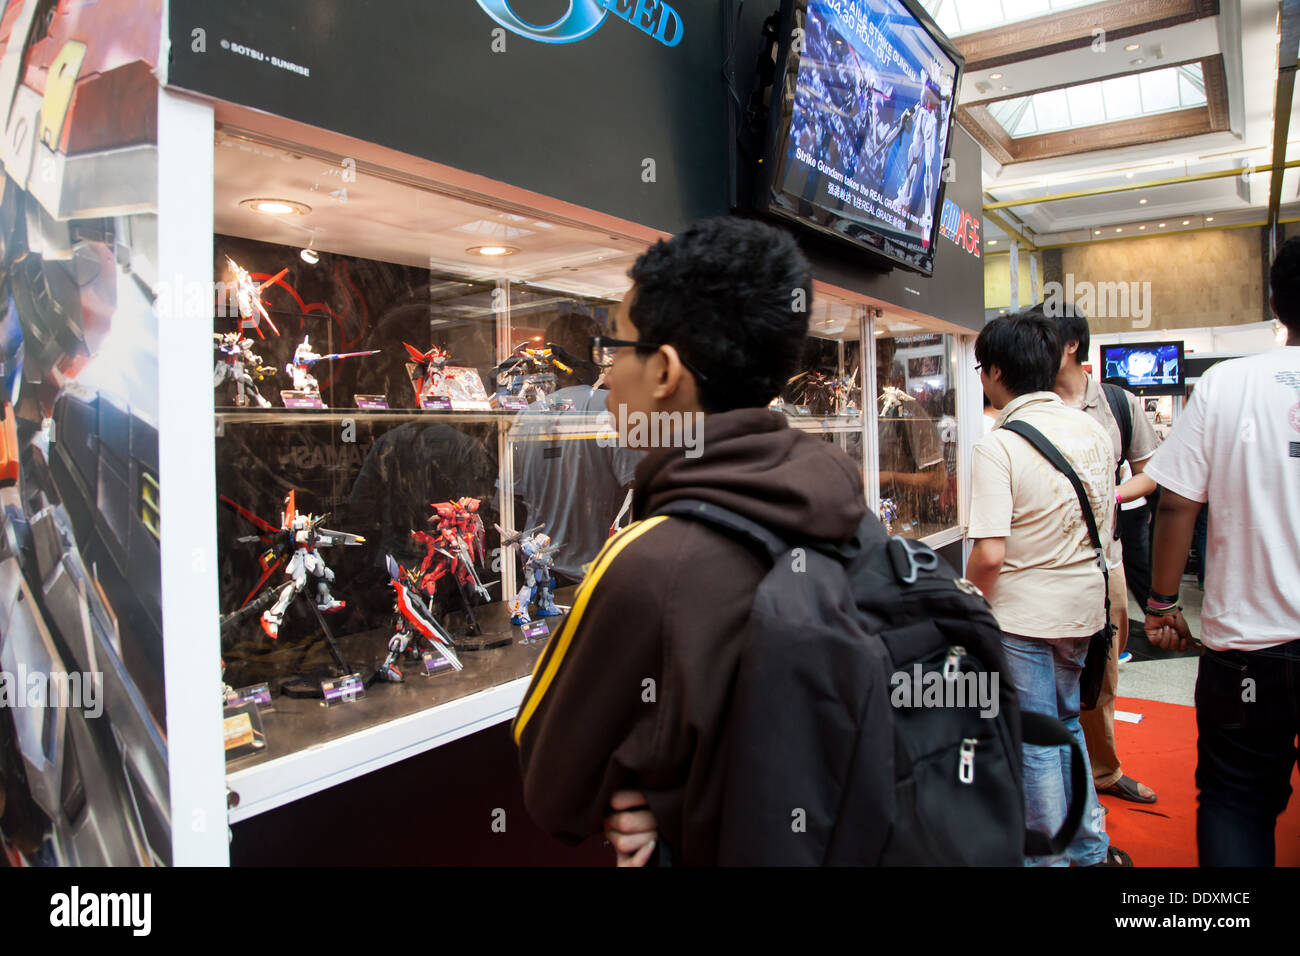 Jakarta Indonesia 8th September 2013 A Visitor Looking At Anime Toy Figurines Inside Glass Showcase In Festival Asia